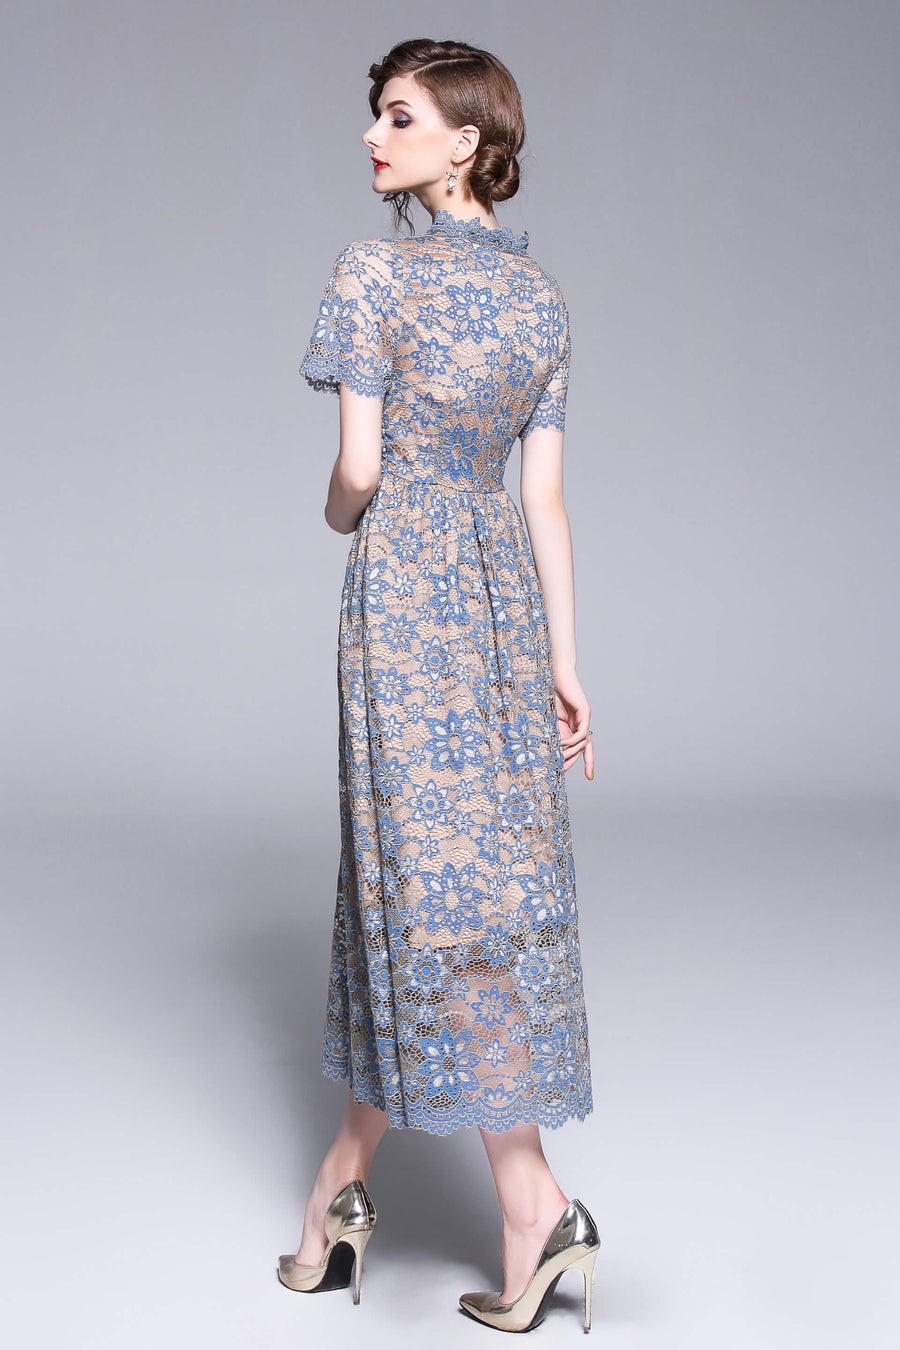 Blue Lace Floral Hollow Out Swing Dress with Buttons Front